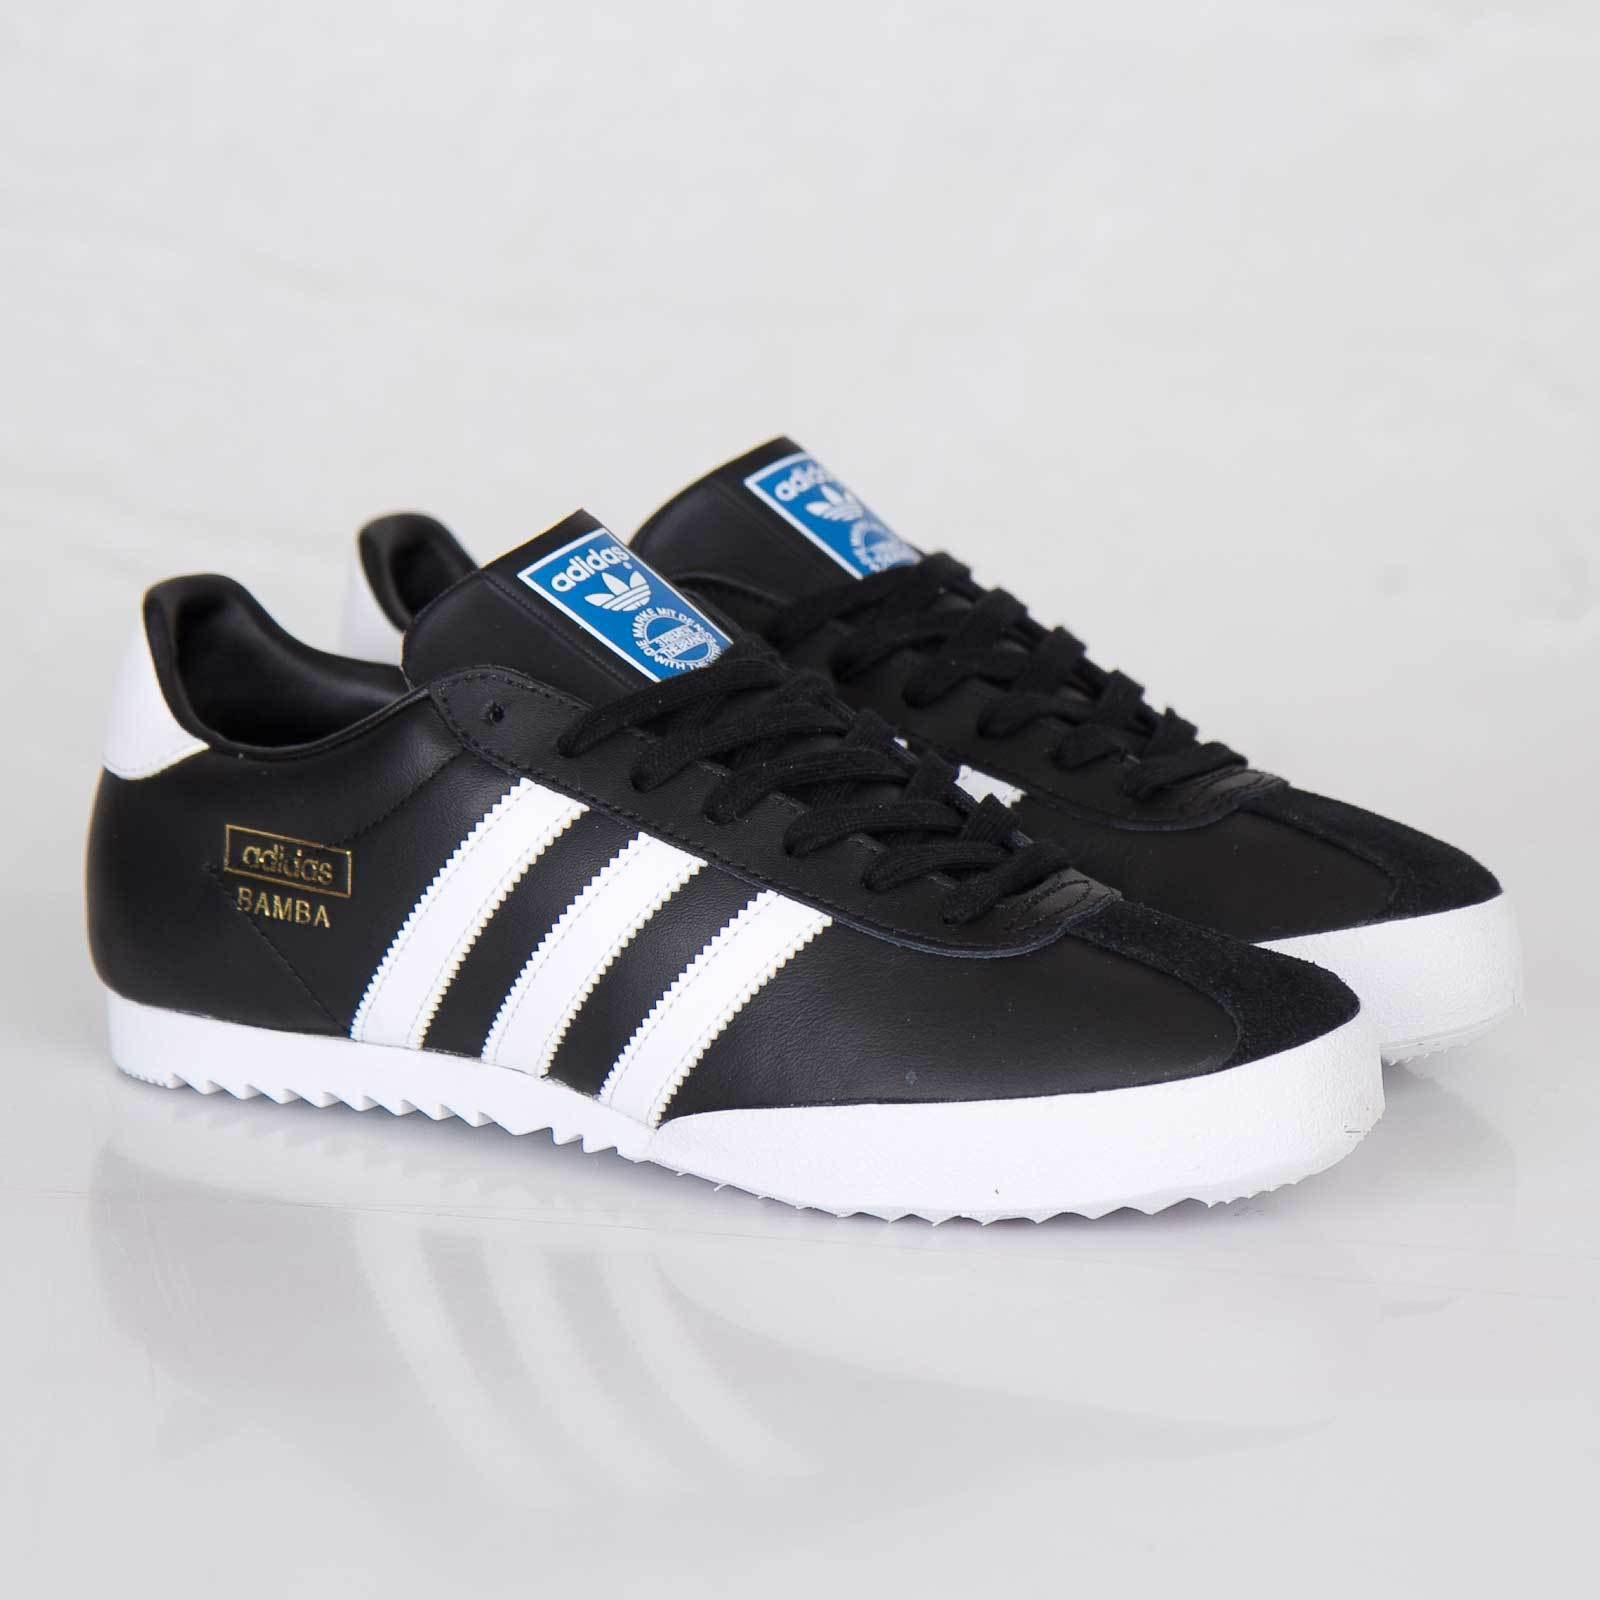 787a568b1b7d5 ... adidas Originals Bamba Mens Casual Retro Gents Trainers Trainers  Trainers Shoes Sizes 7-12 UK ...